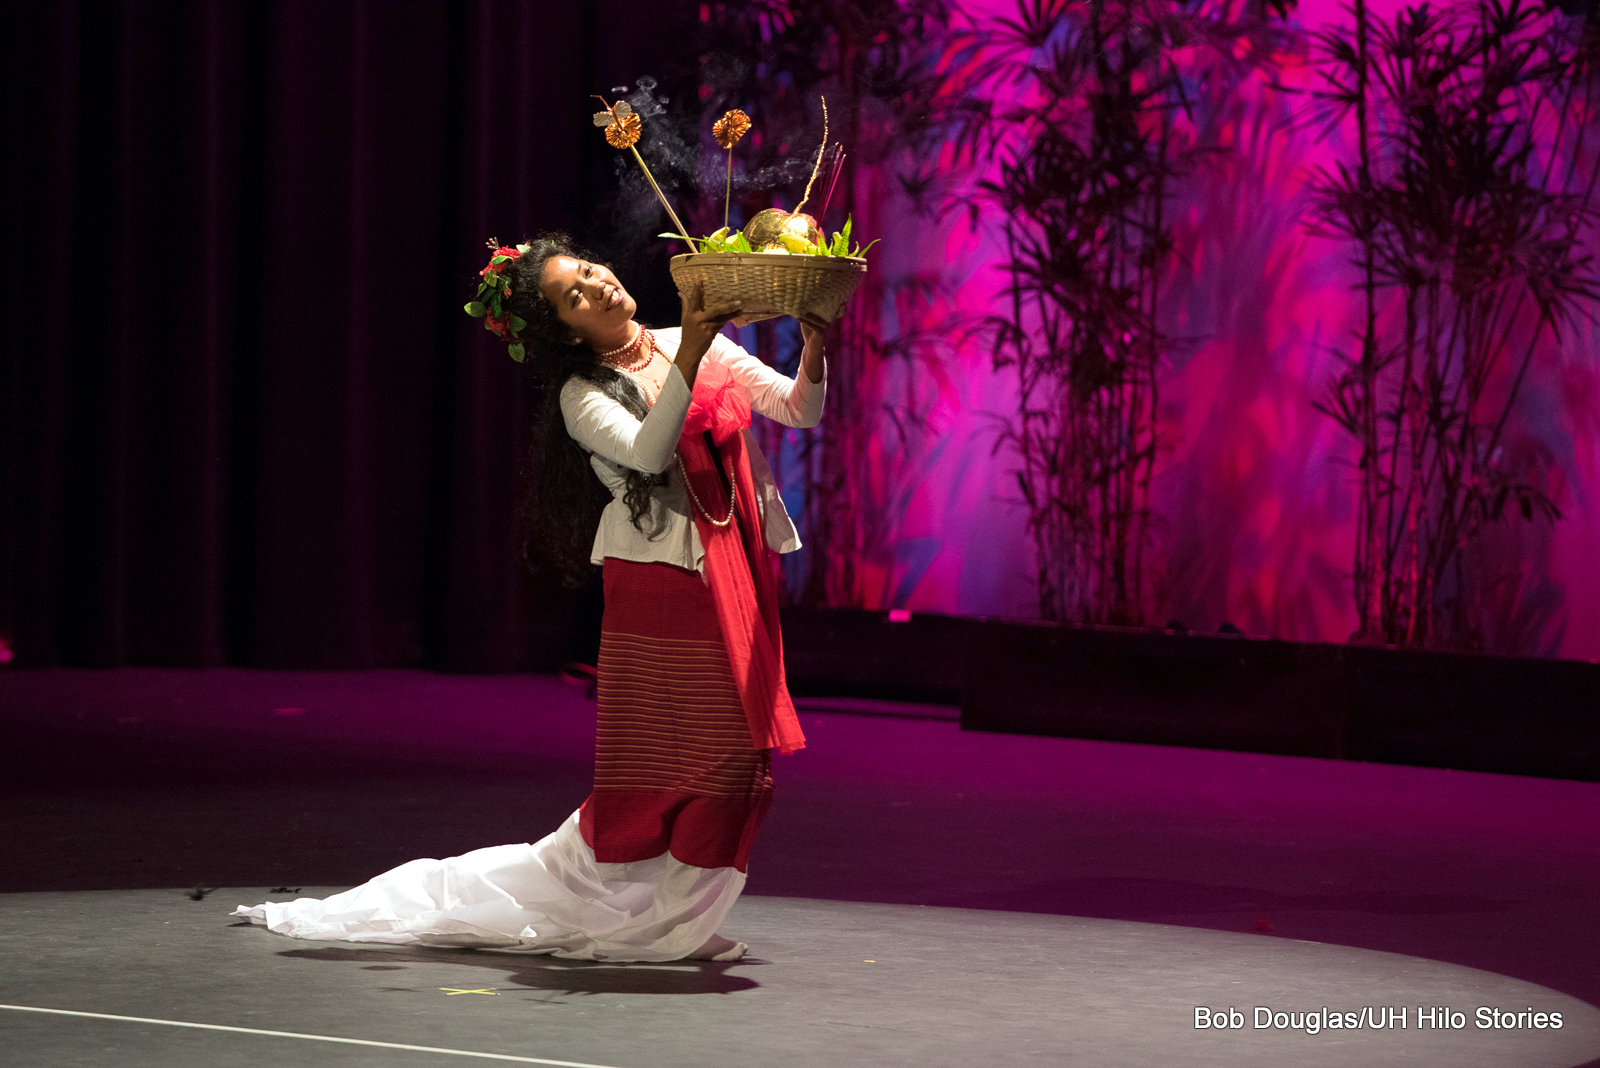 Single woman walking forward on stage, red and white costume, she is holding up basket of fruit with burning incense.